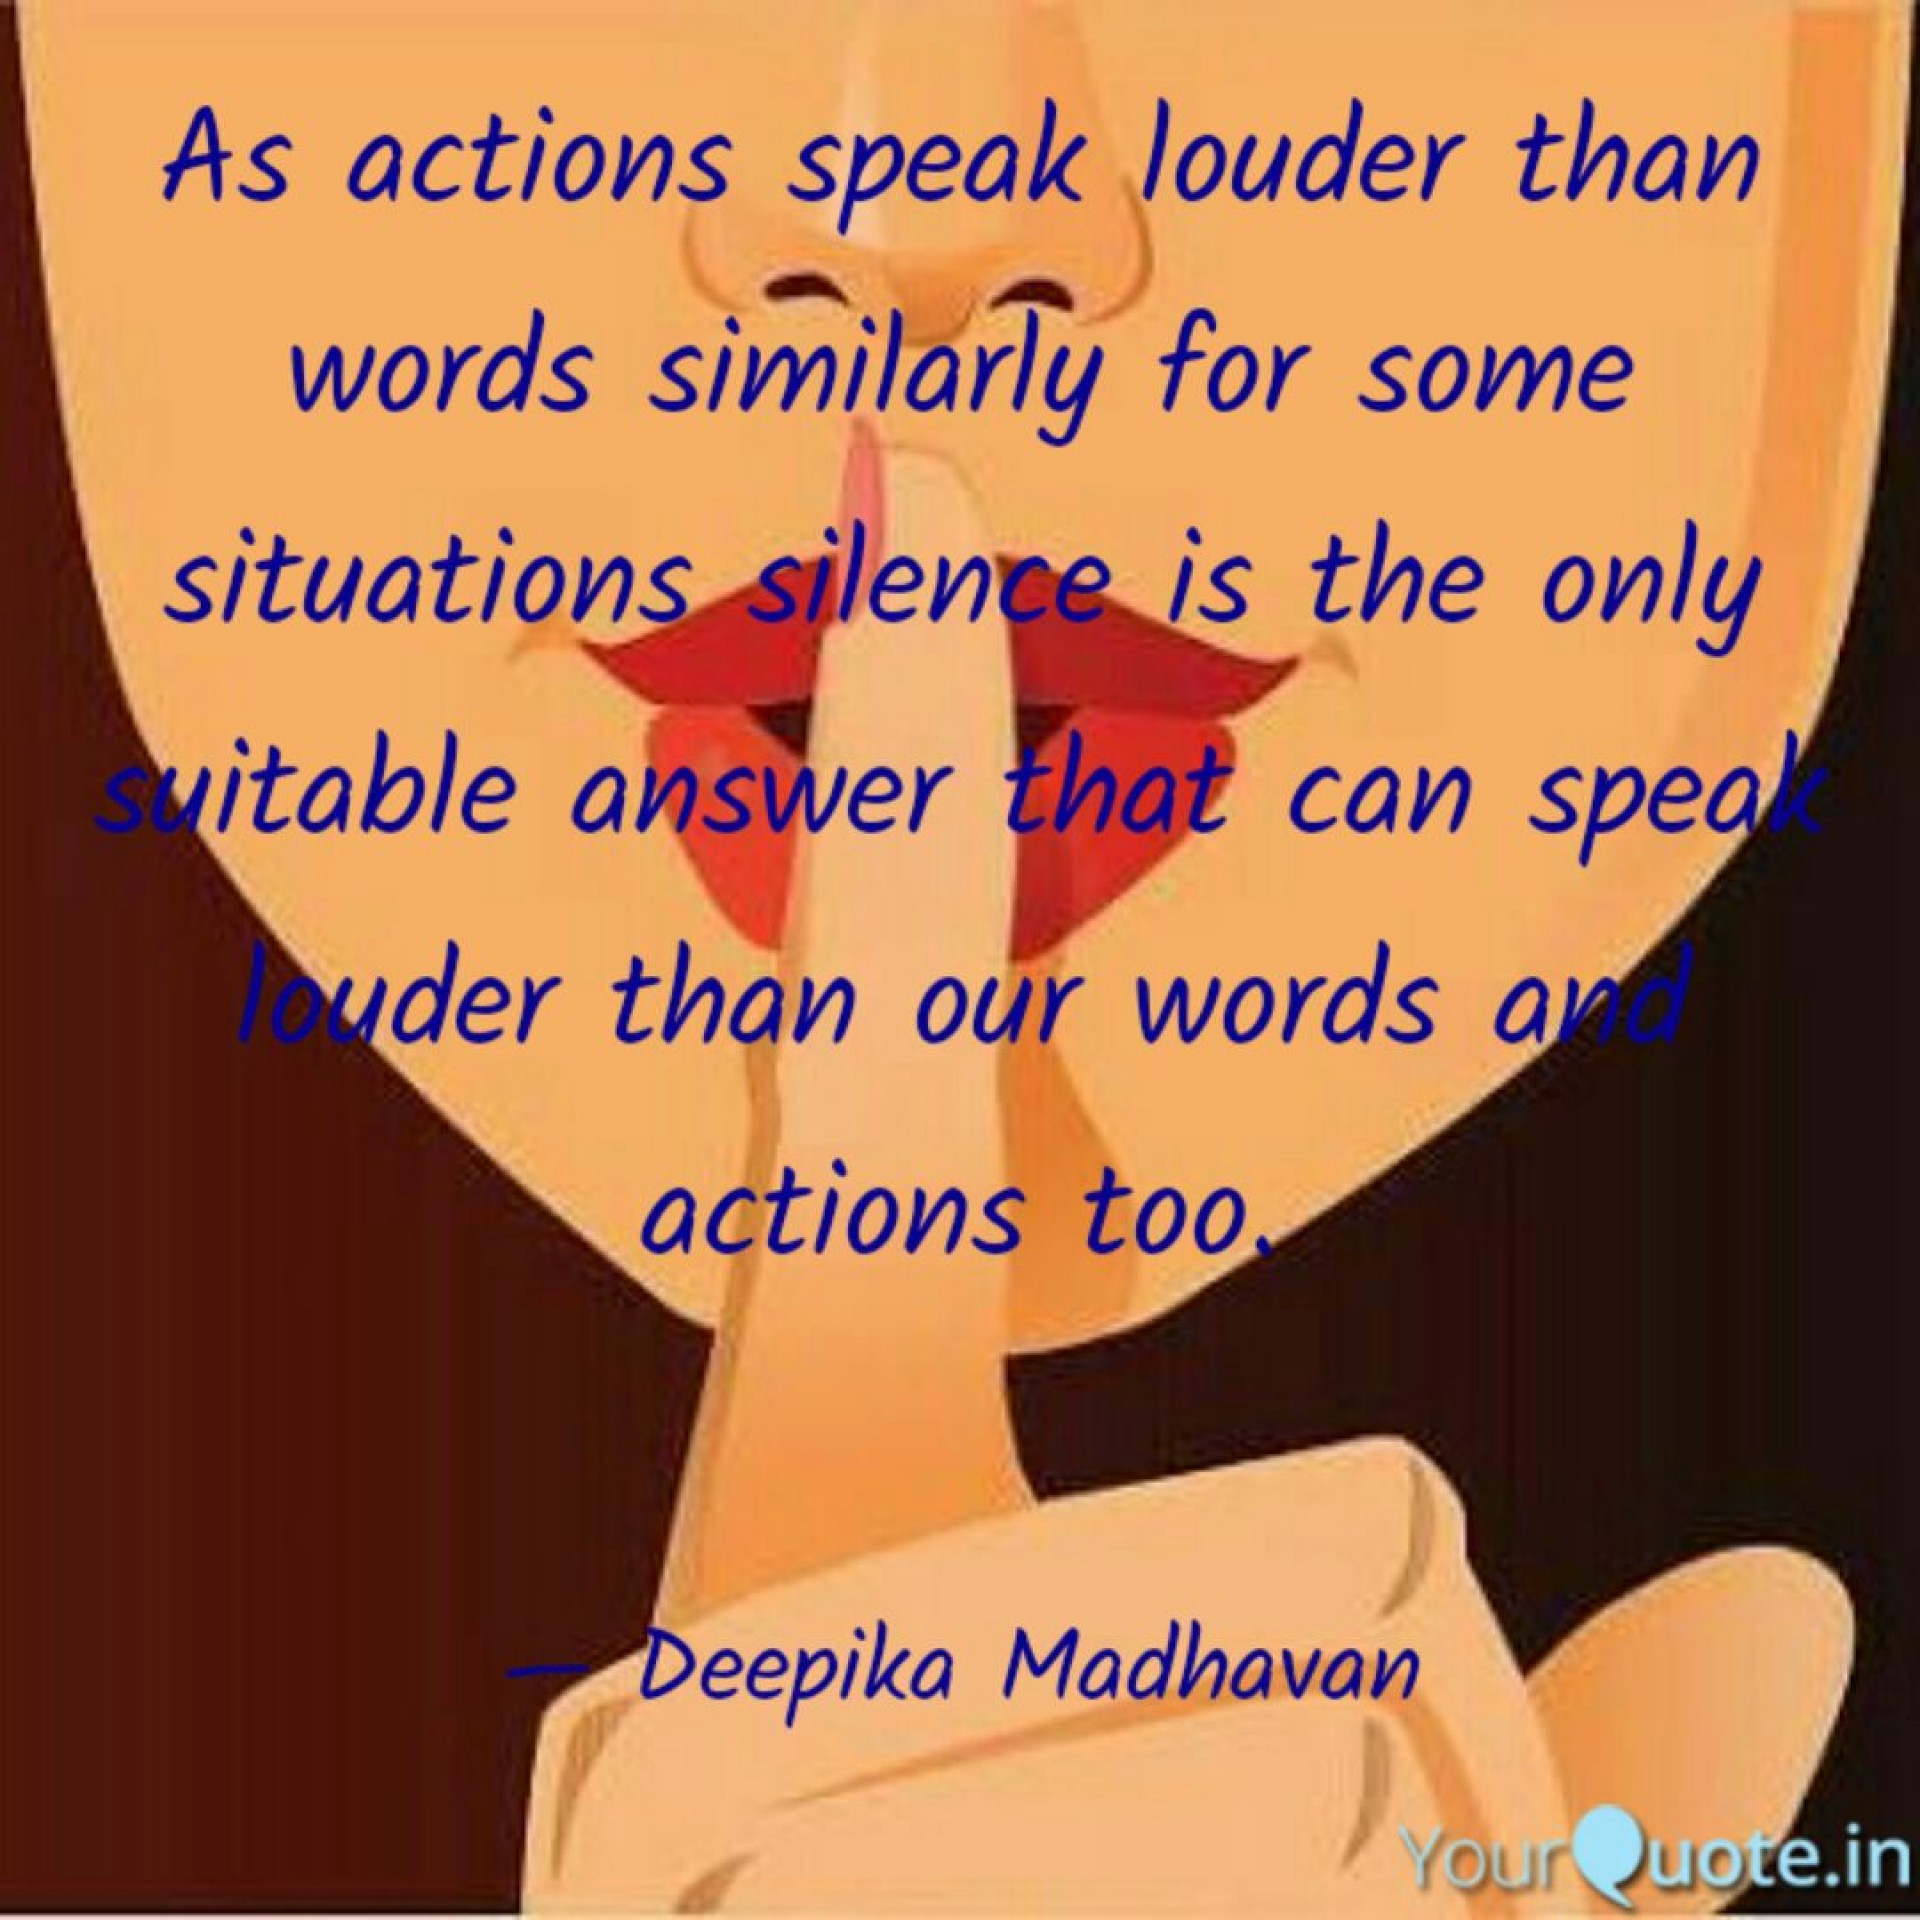 002 Silence Speaks Louder Than Words Quote As Actions Speak Quotedeepika Madhavan Yourquote Action Essay Surprising Pte Pdf Outline 1920